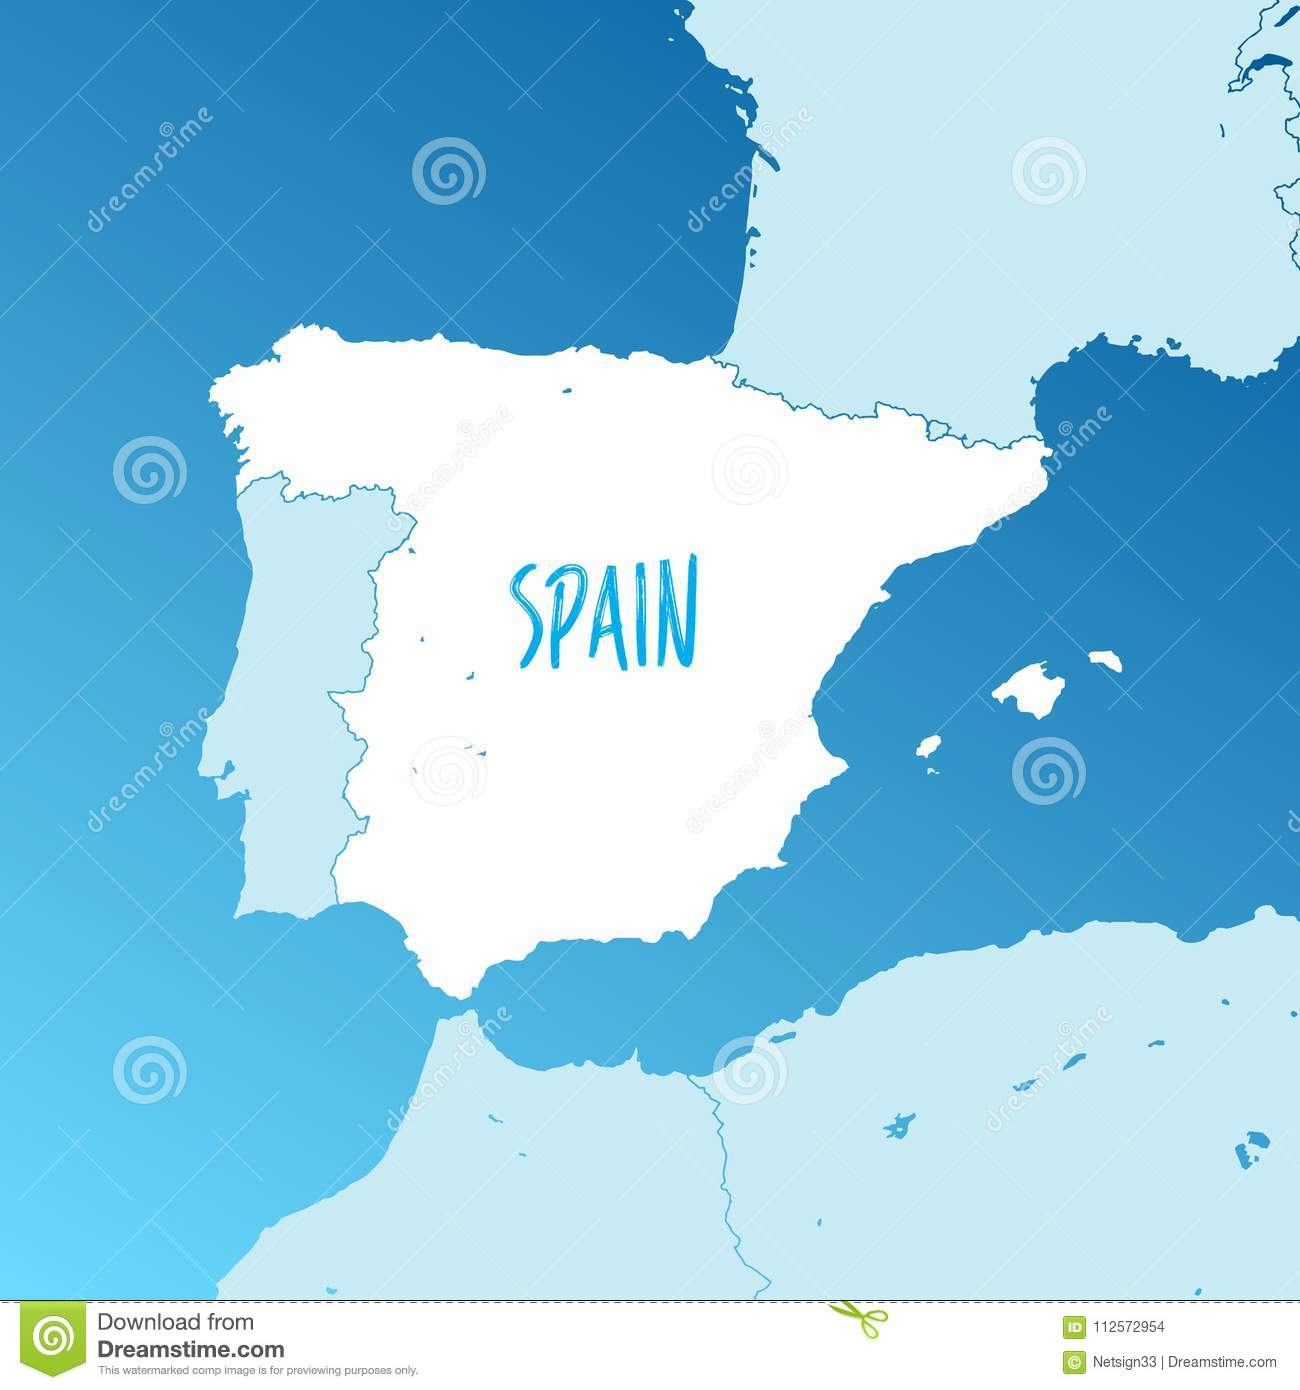 Map Of Spain And Surrounding Islands.Spain Vector Map Stock Vector Illustration Of Icons 112572954